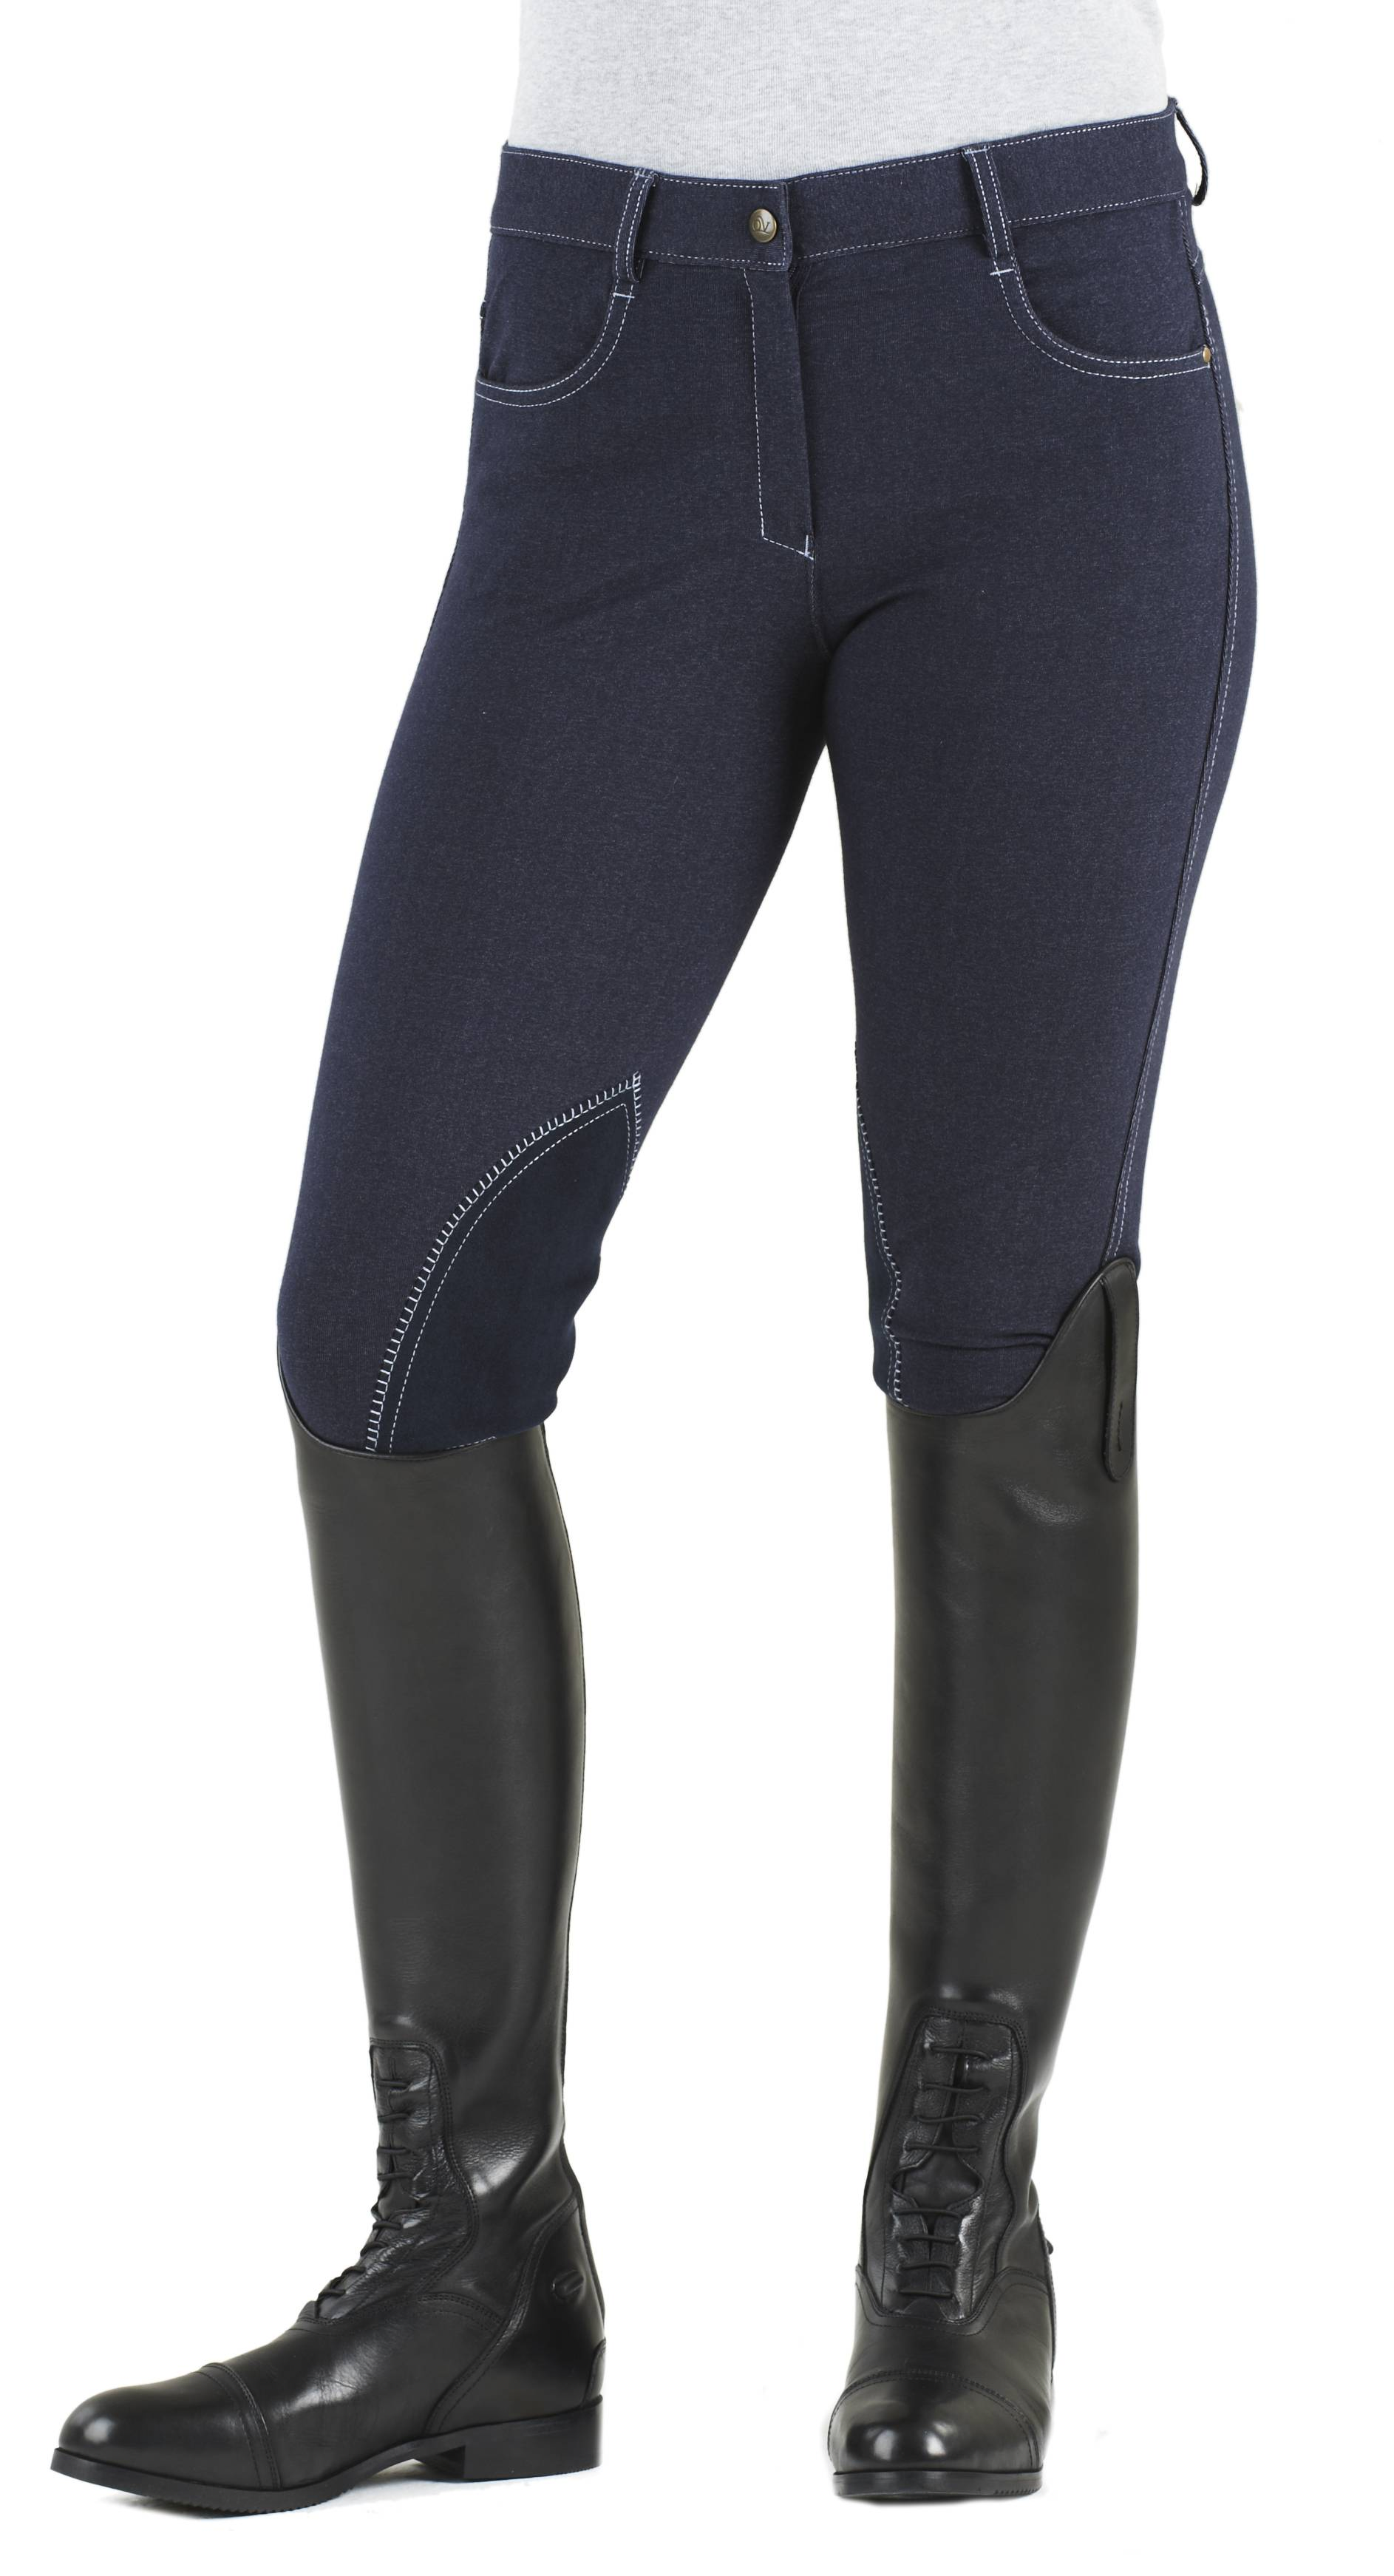 Ovation Ladies Euro Jean Zip Front Knee Patch Breeches